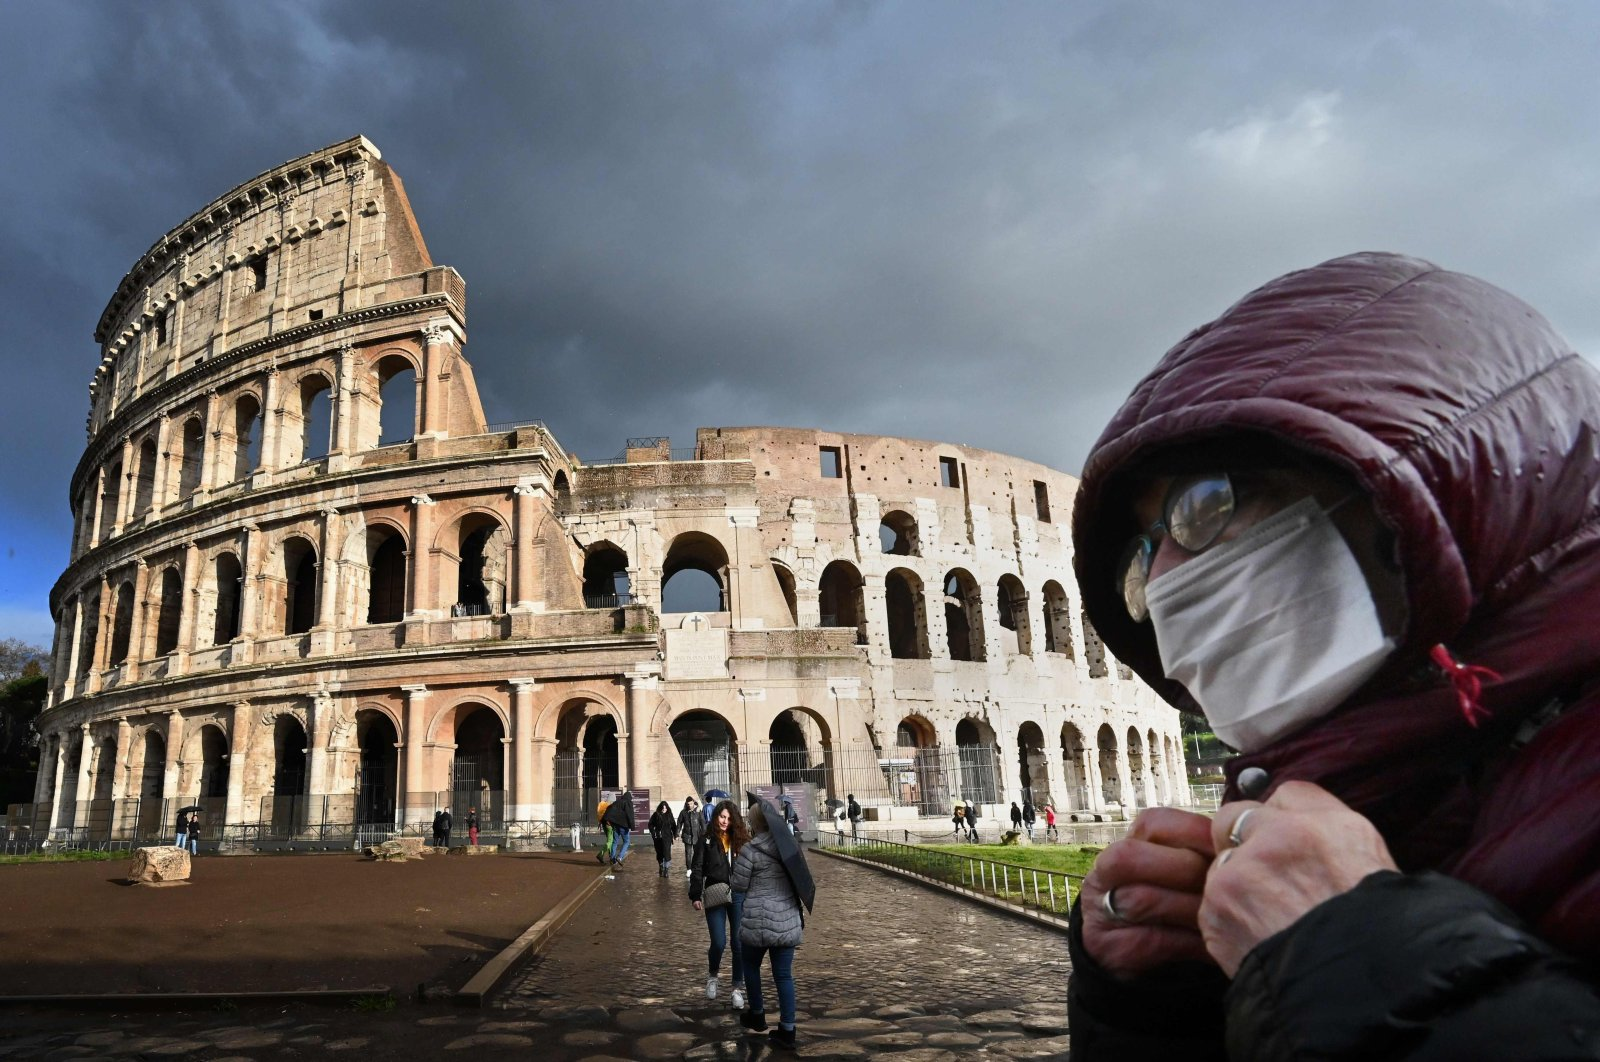 A man wearing a protective mask passes by the Coliseum monument in Rome amid fear of the Covid-19 pandemic, March 7, 2020. (AFP Photo)